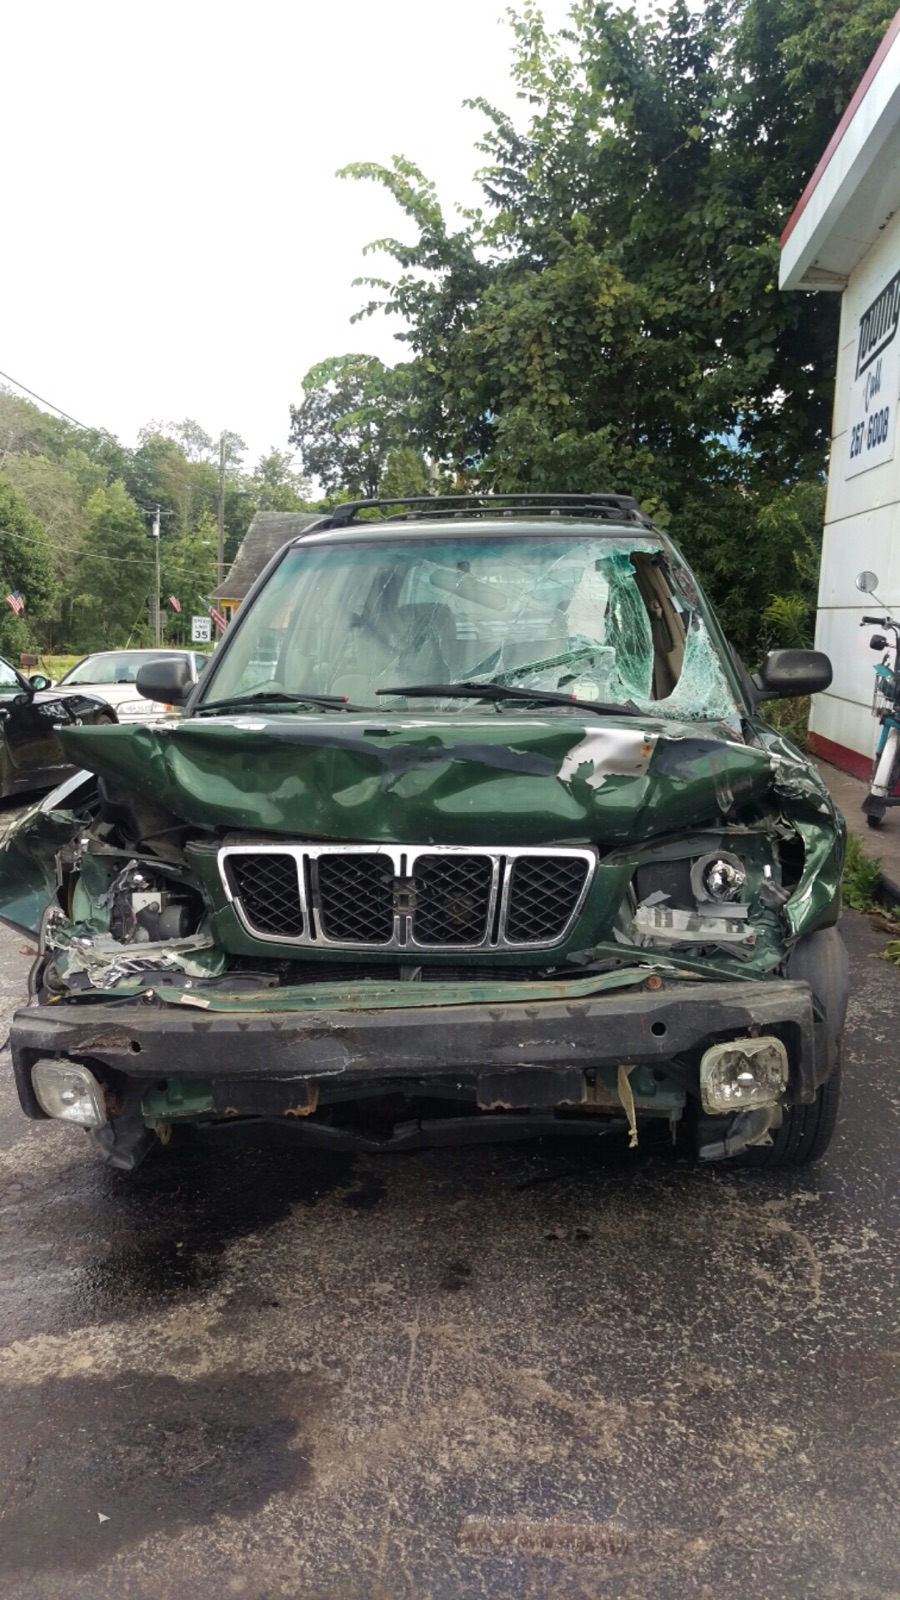 State Farm Report Accident >> Warren man involved in NY crash | News, Sports, Jobs - Times Observer